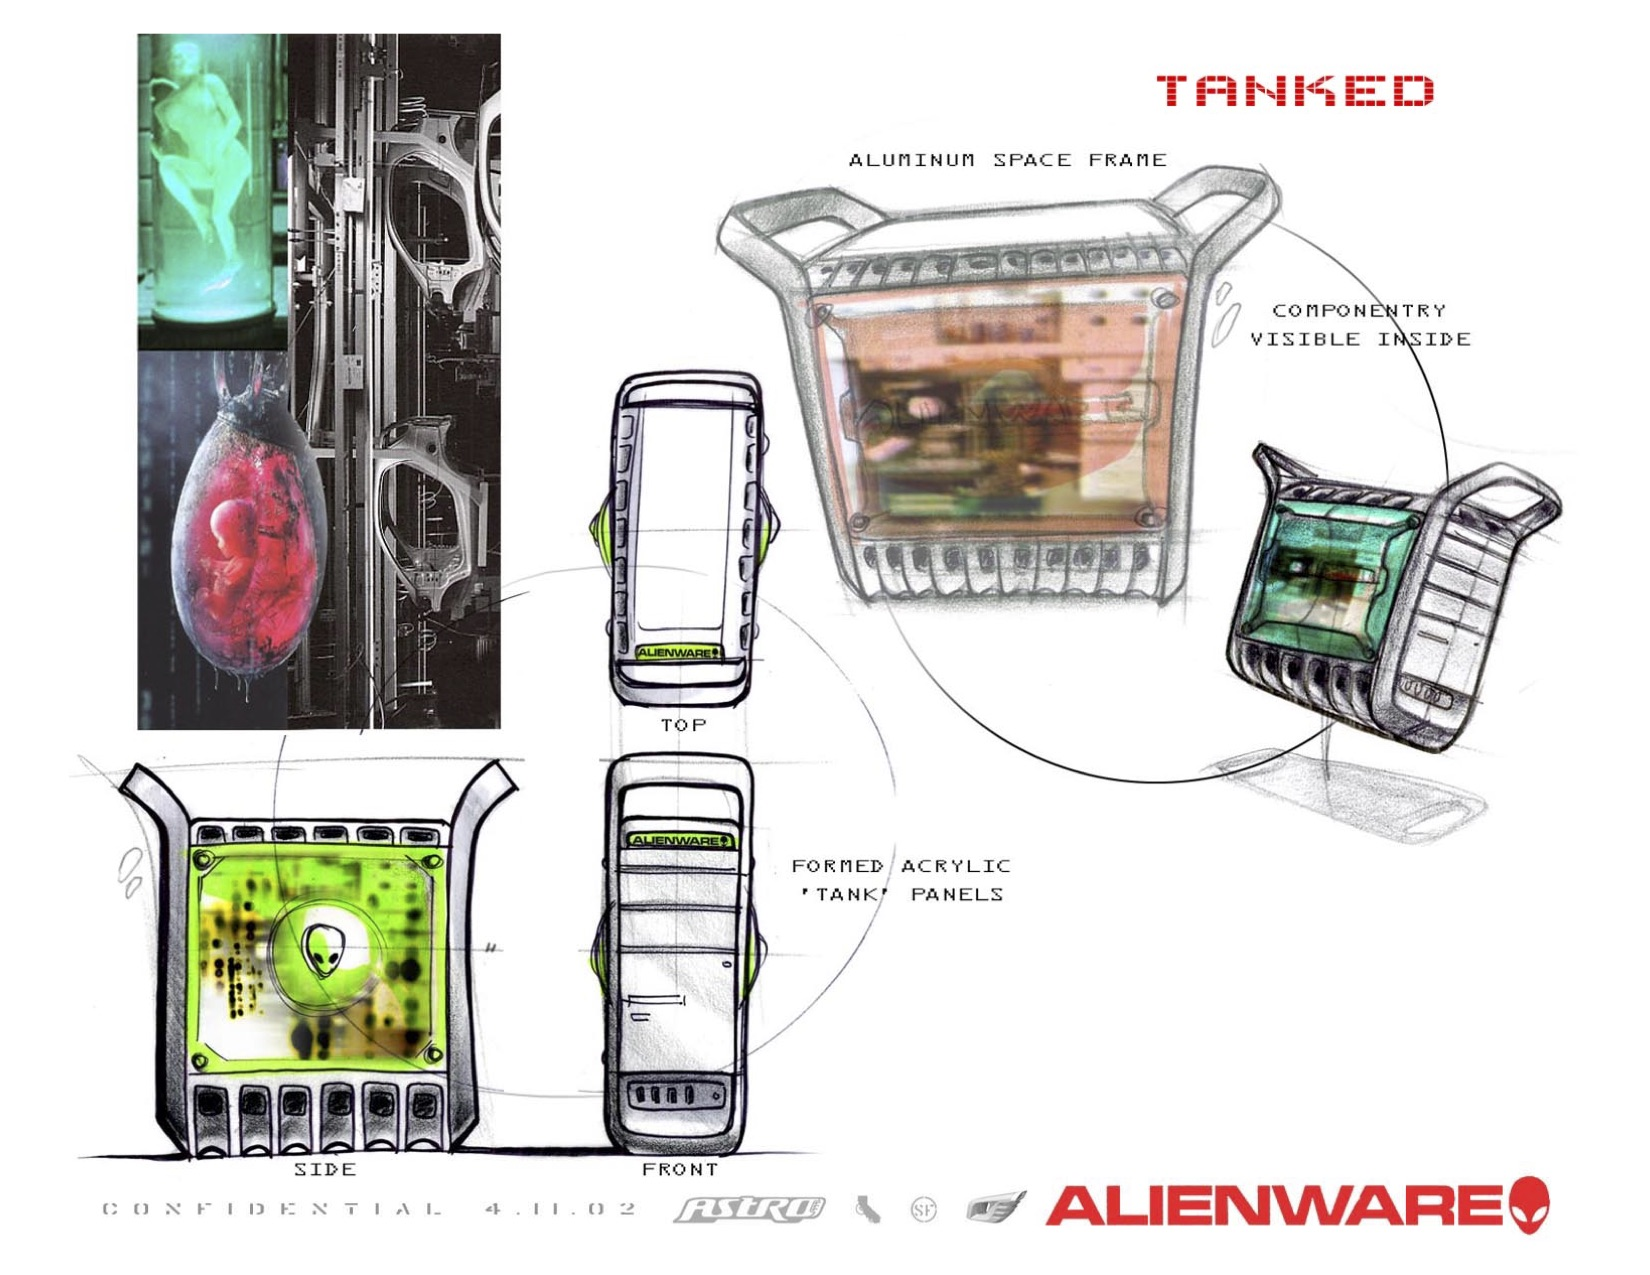 The Alienware Tanked